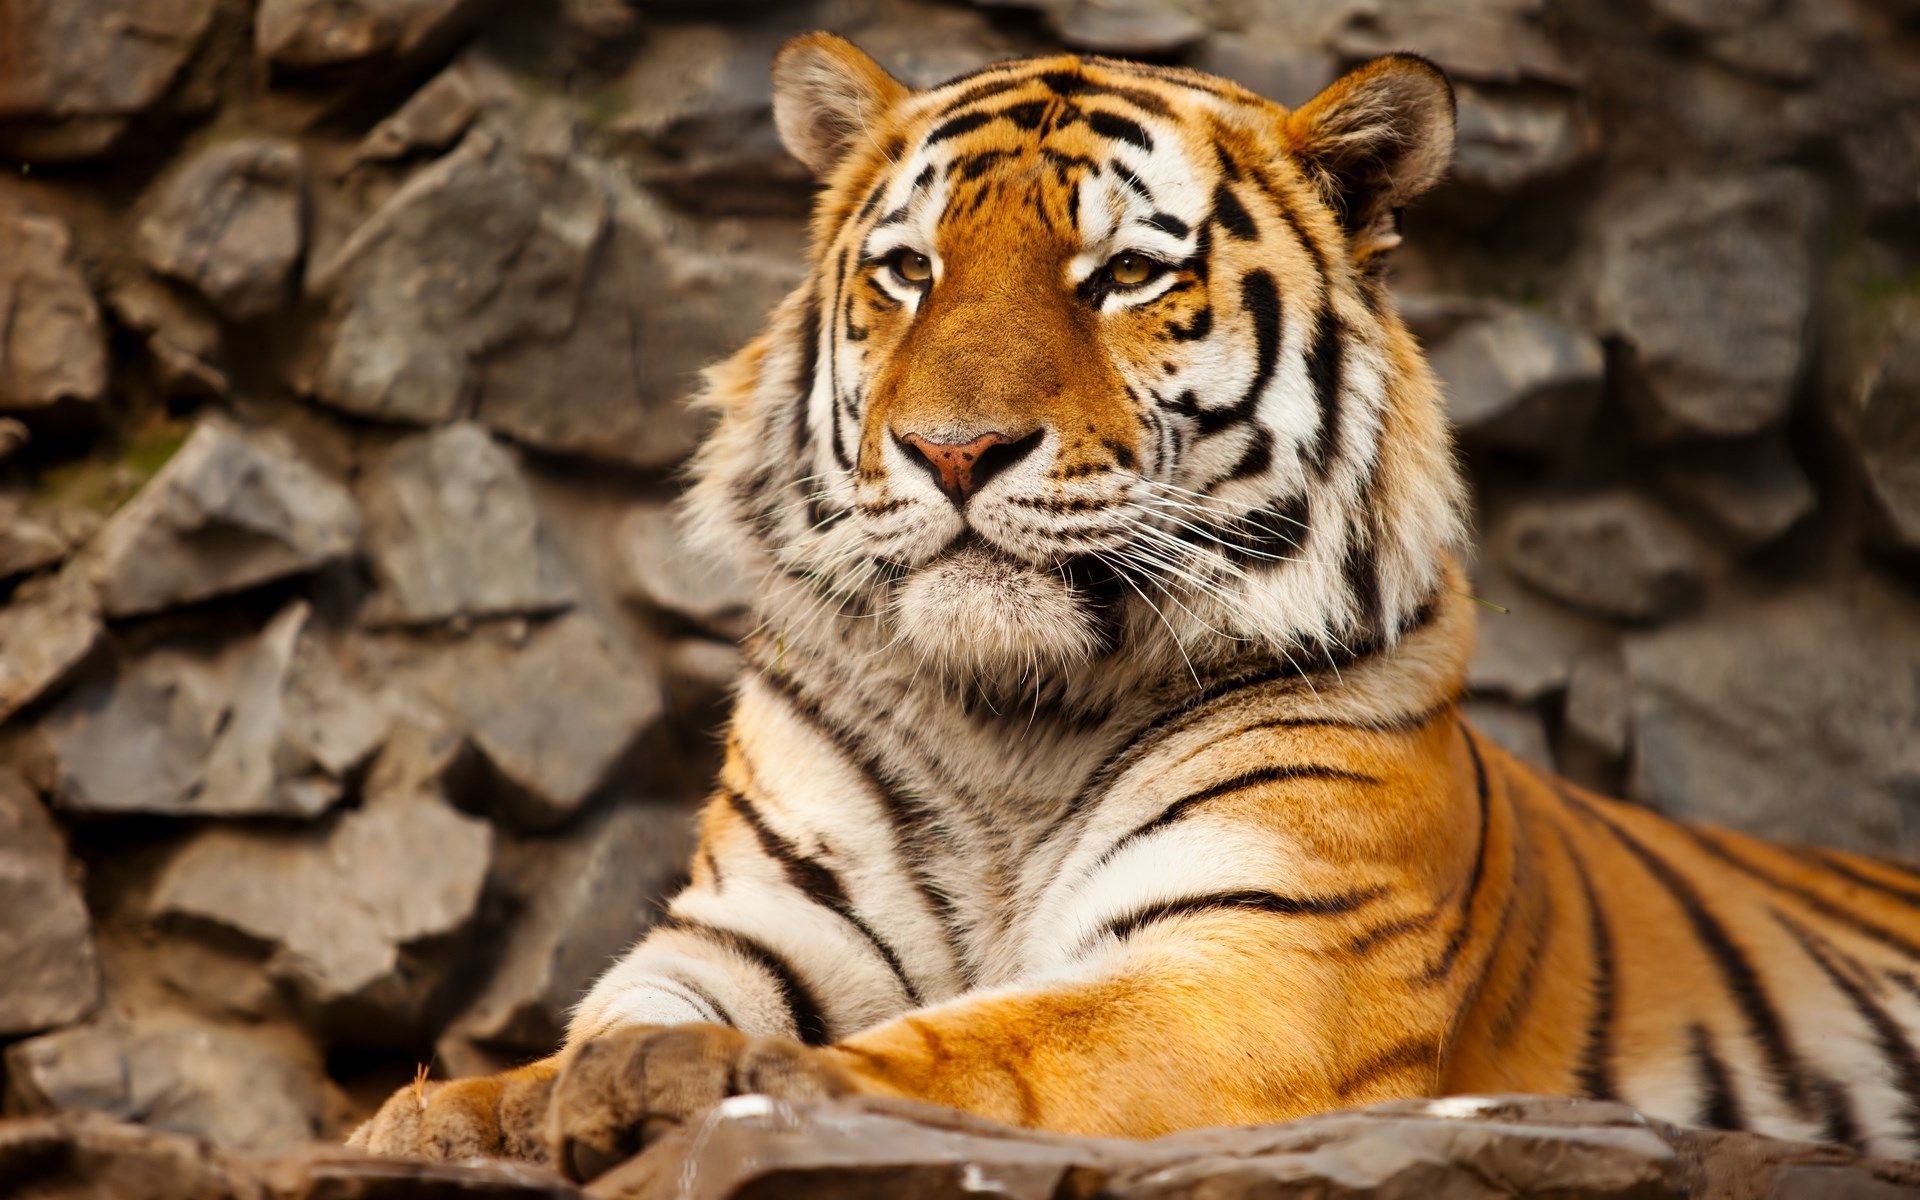 high resolution wallpapers tiger picwhistler gill (2017-03-04